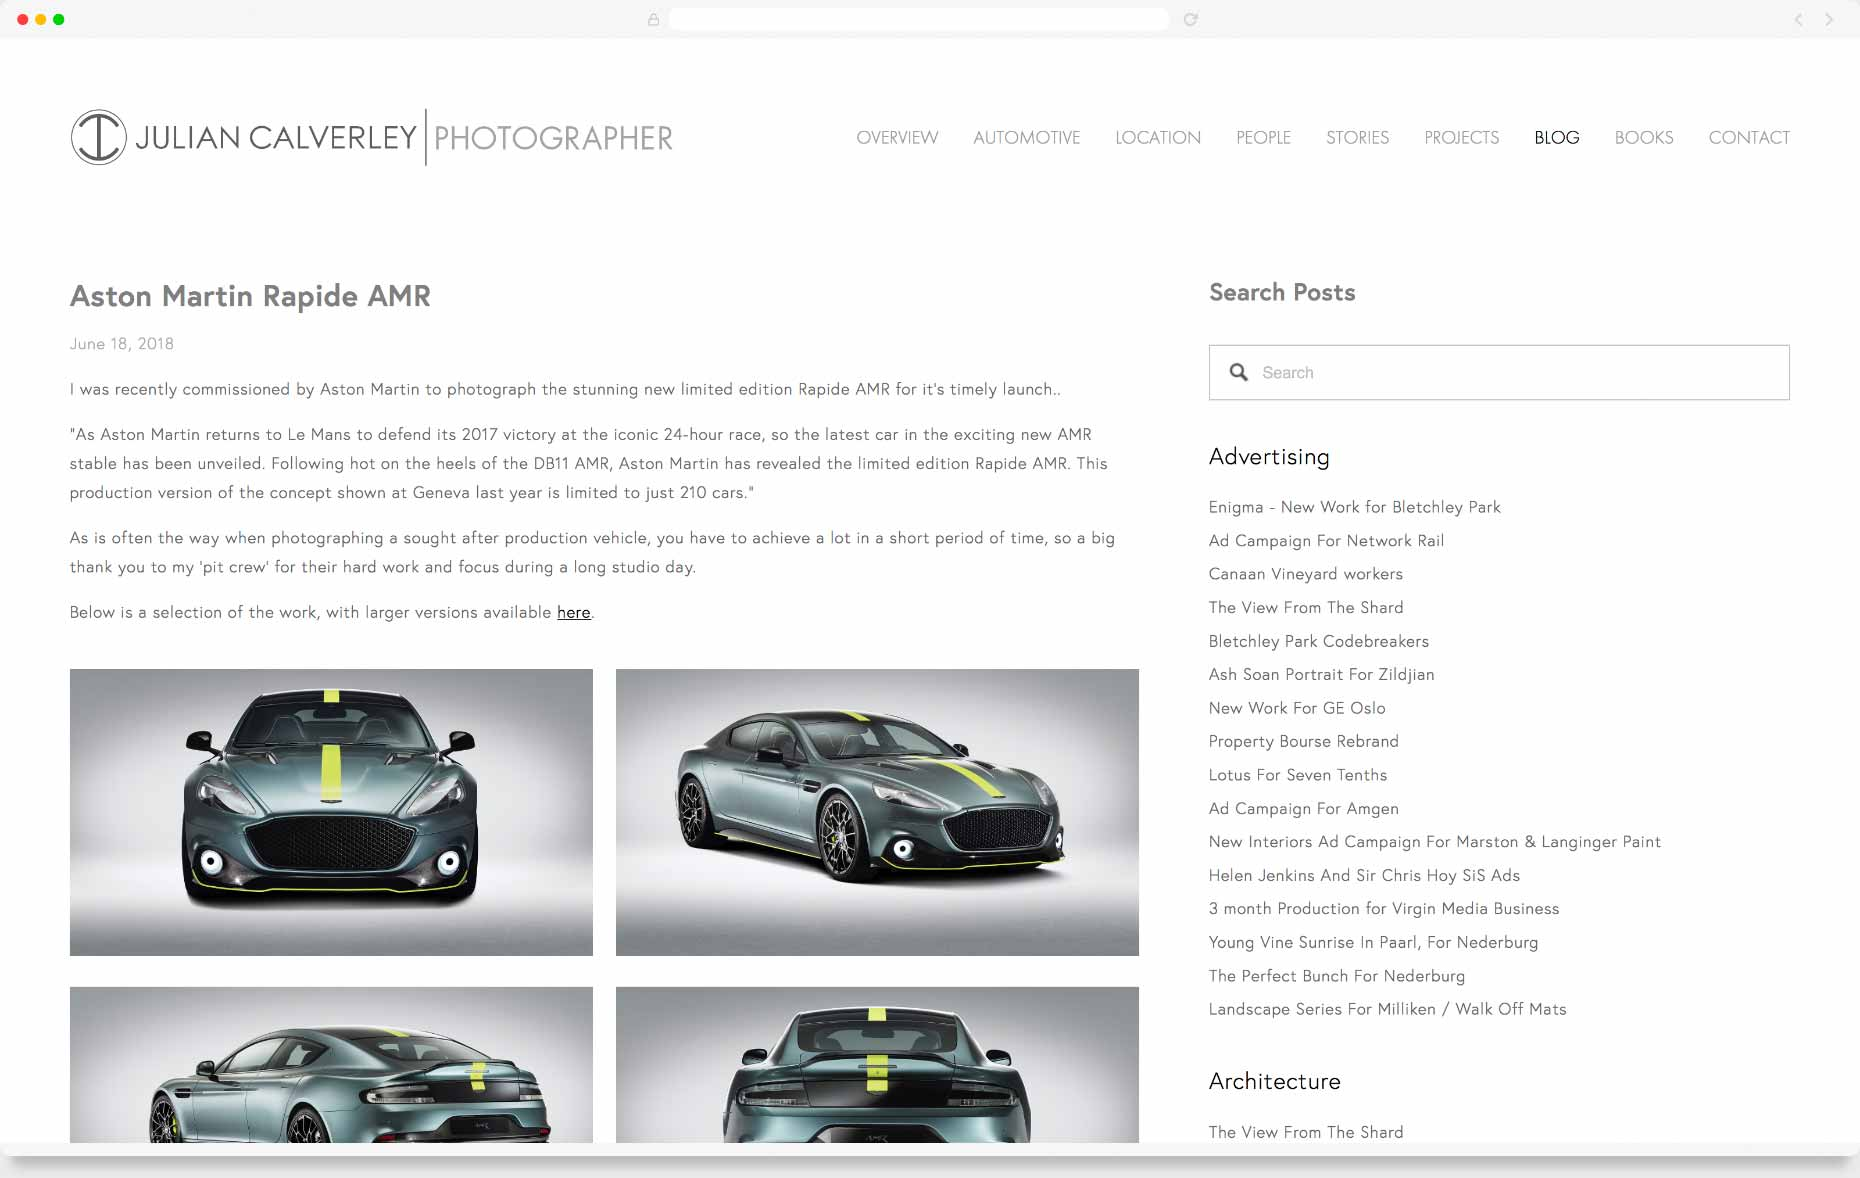 Website Design & Development - Julian Calverley, Hertfordshire